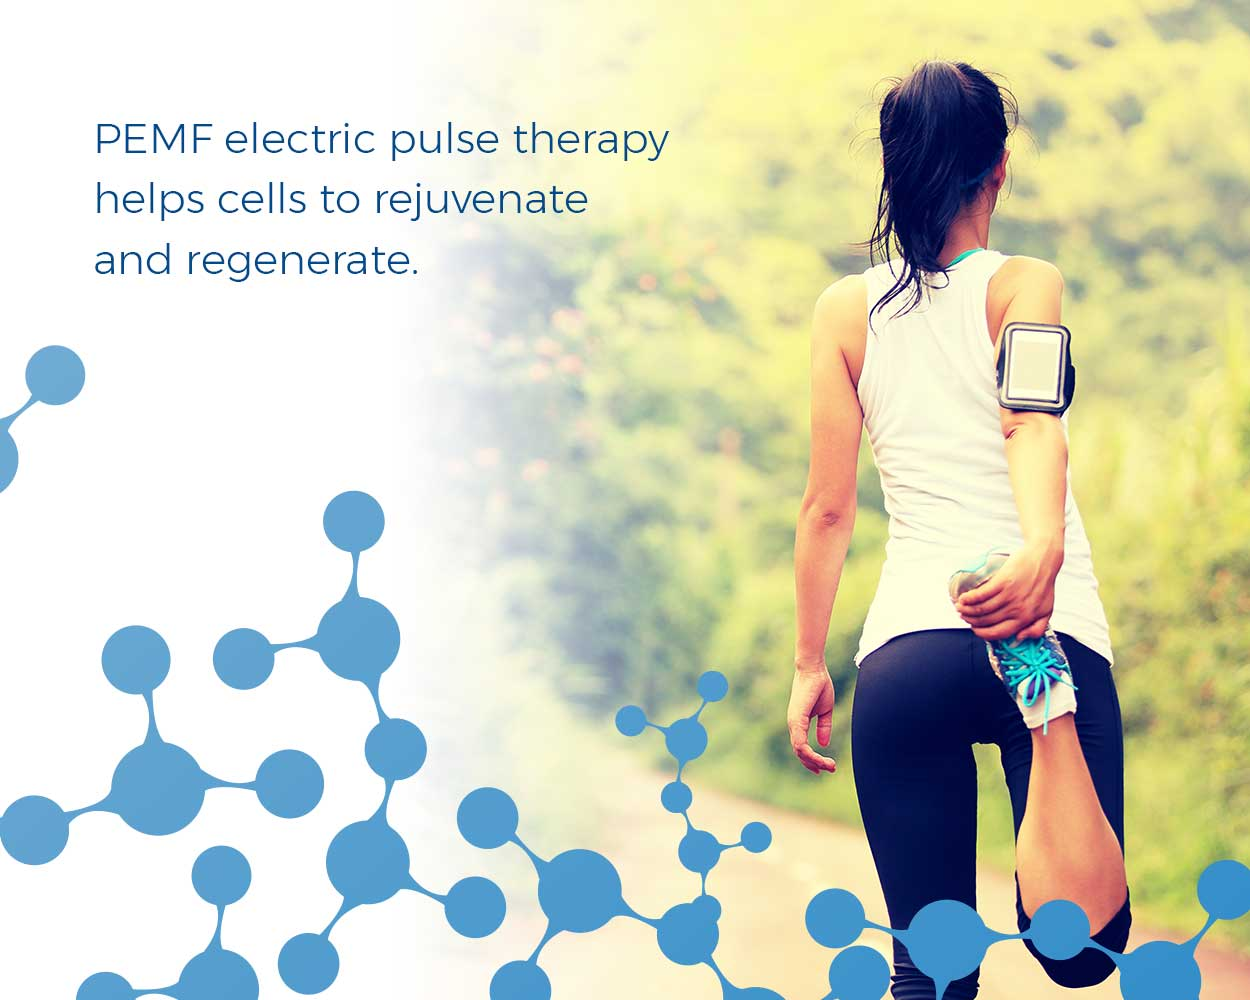 PEMF electric pulse therapy helps cells to rejuvenate and regenerate.